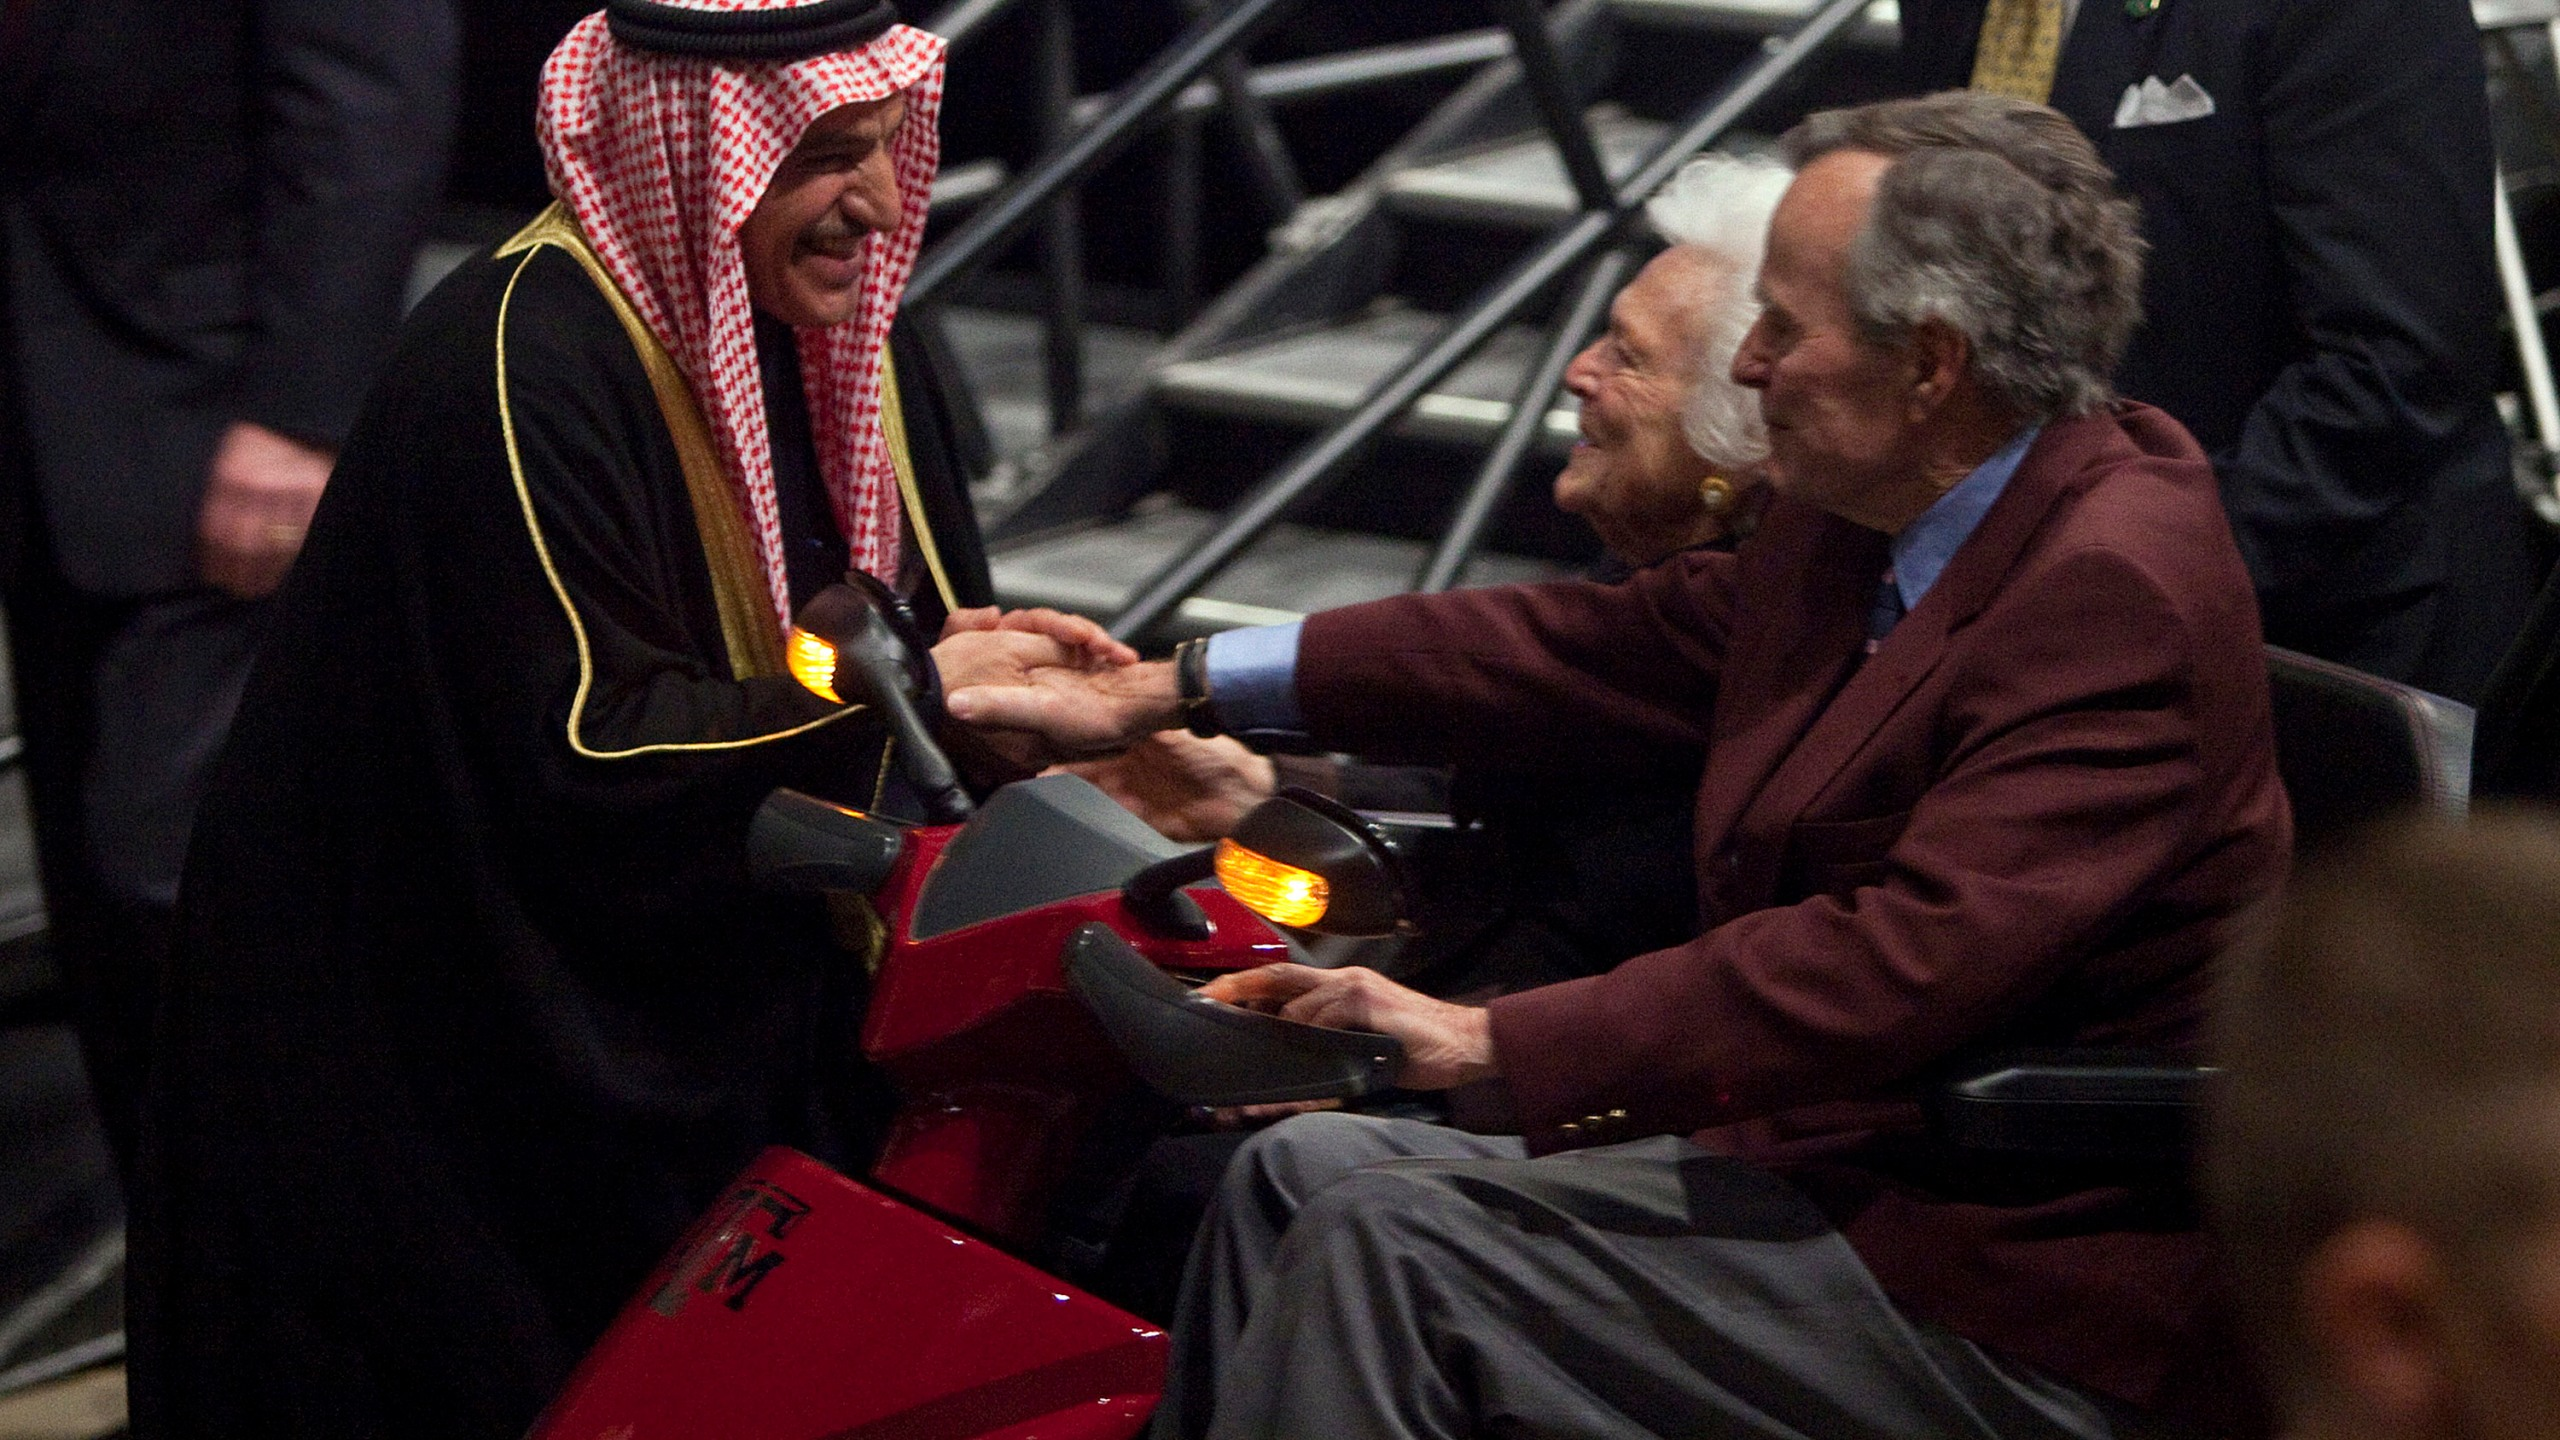 Former President George H. W. Bush (R) and first lady Barbara Bush (C) shake hands with His Excellency the Deputy Prime Minister of the State of Kuwait Sheikh Dr. Mohammad Sabah Al-Salim Al-Sabah after a panel discussion at an event honoring the 20th anniversary of the Persian Gulf War on January 20, 2011 in College Station Texas. (Credit: Ben Sklar/Getty Images)